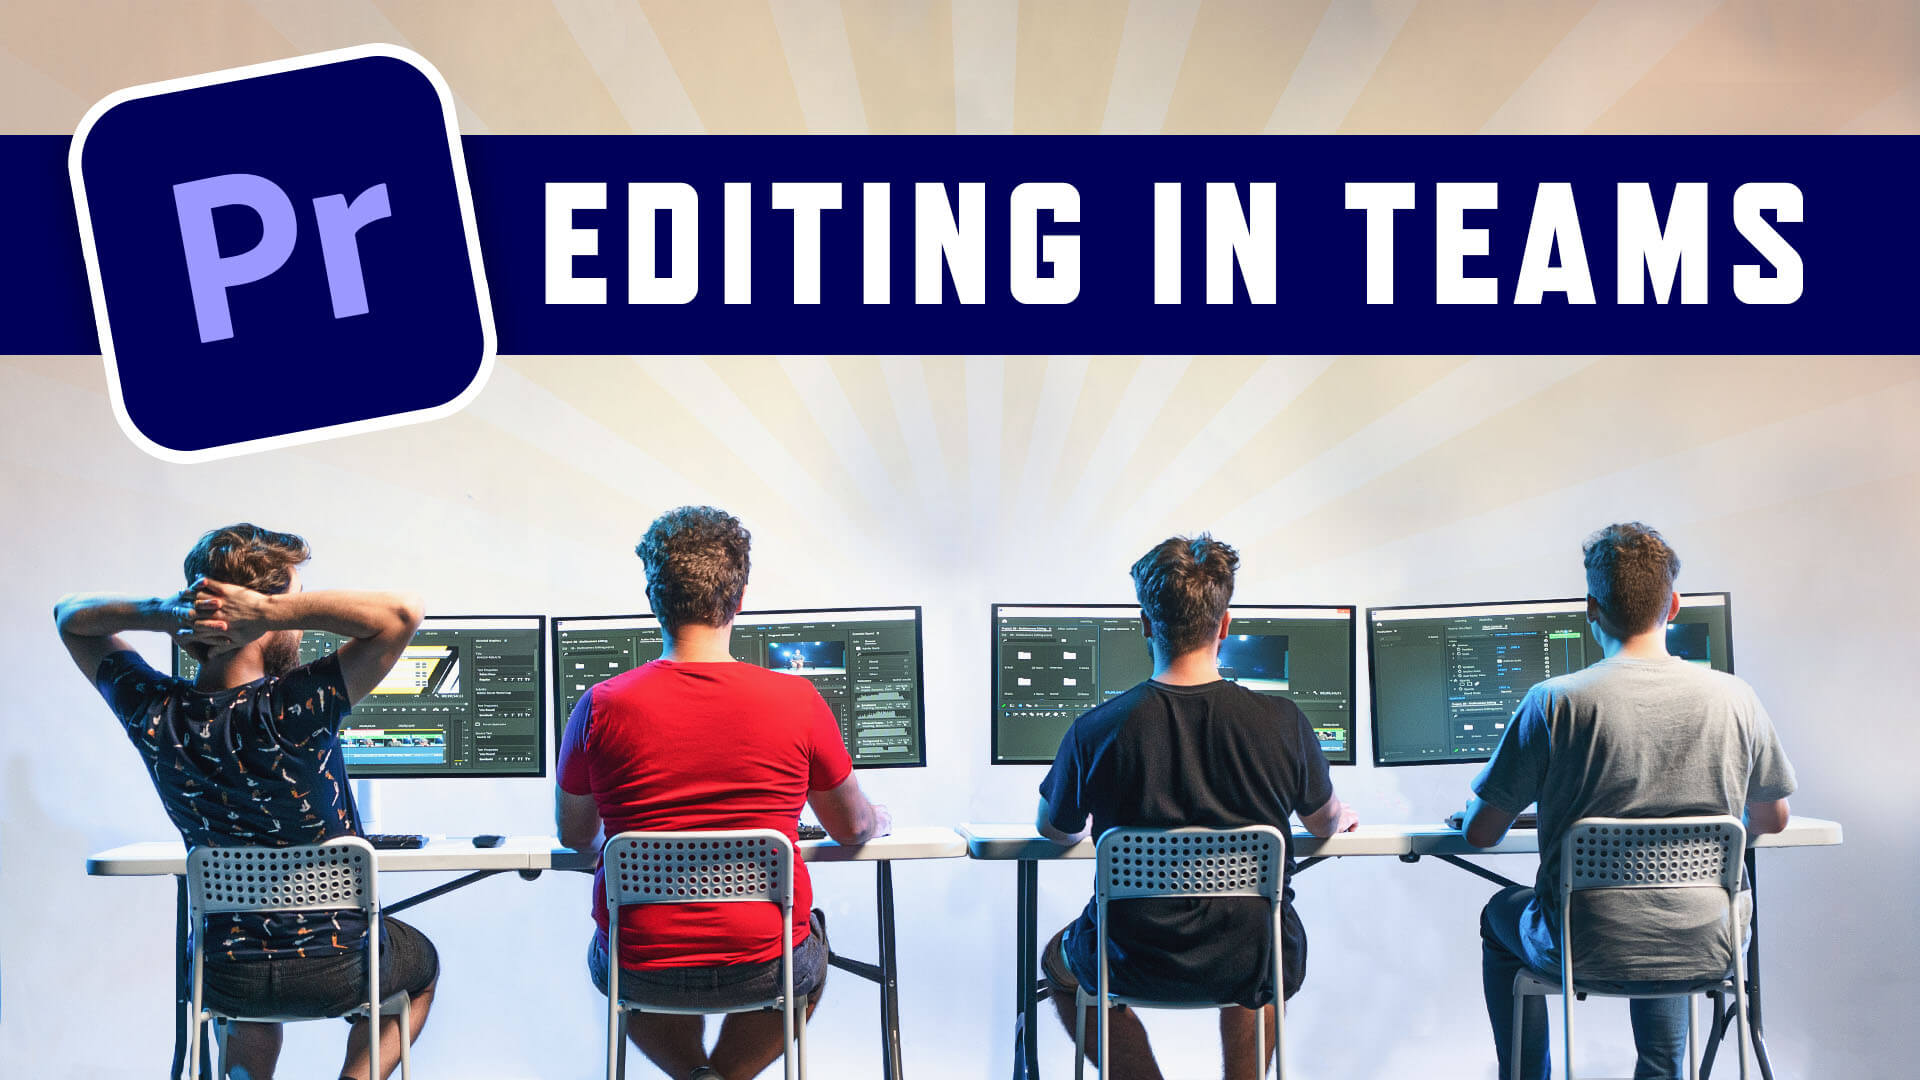 Cinecom – Video Editing In Teams: Infrastructure & Adobe Premiere Pro Workflow